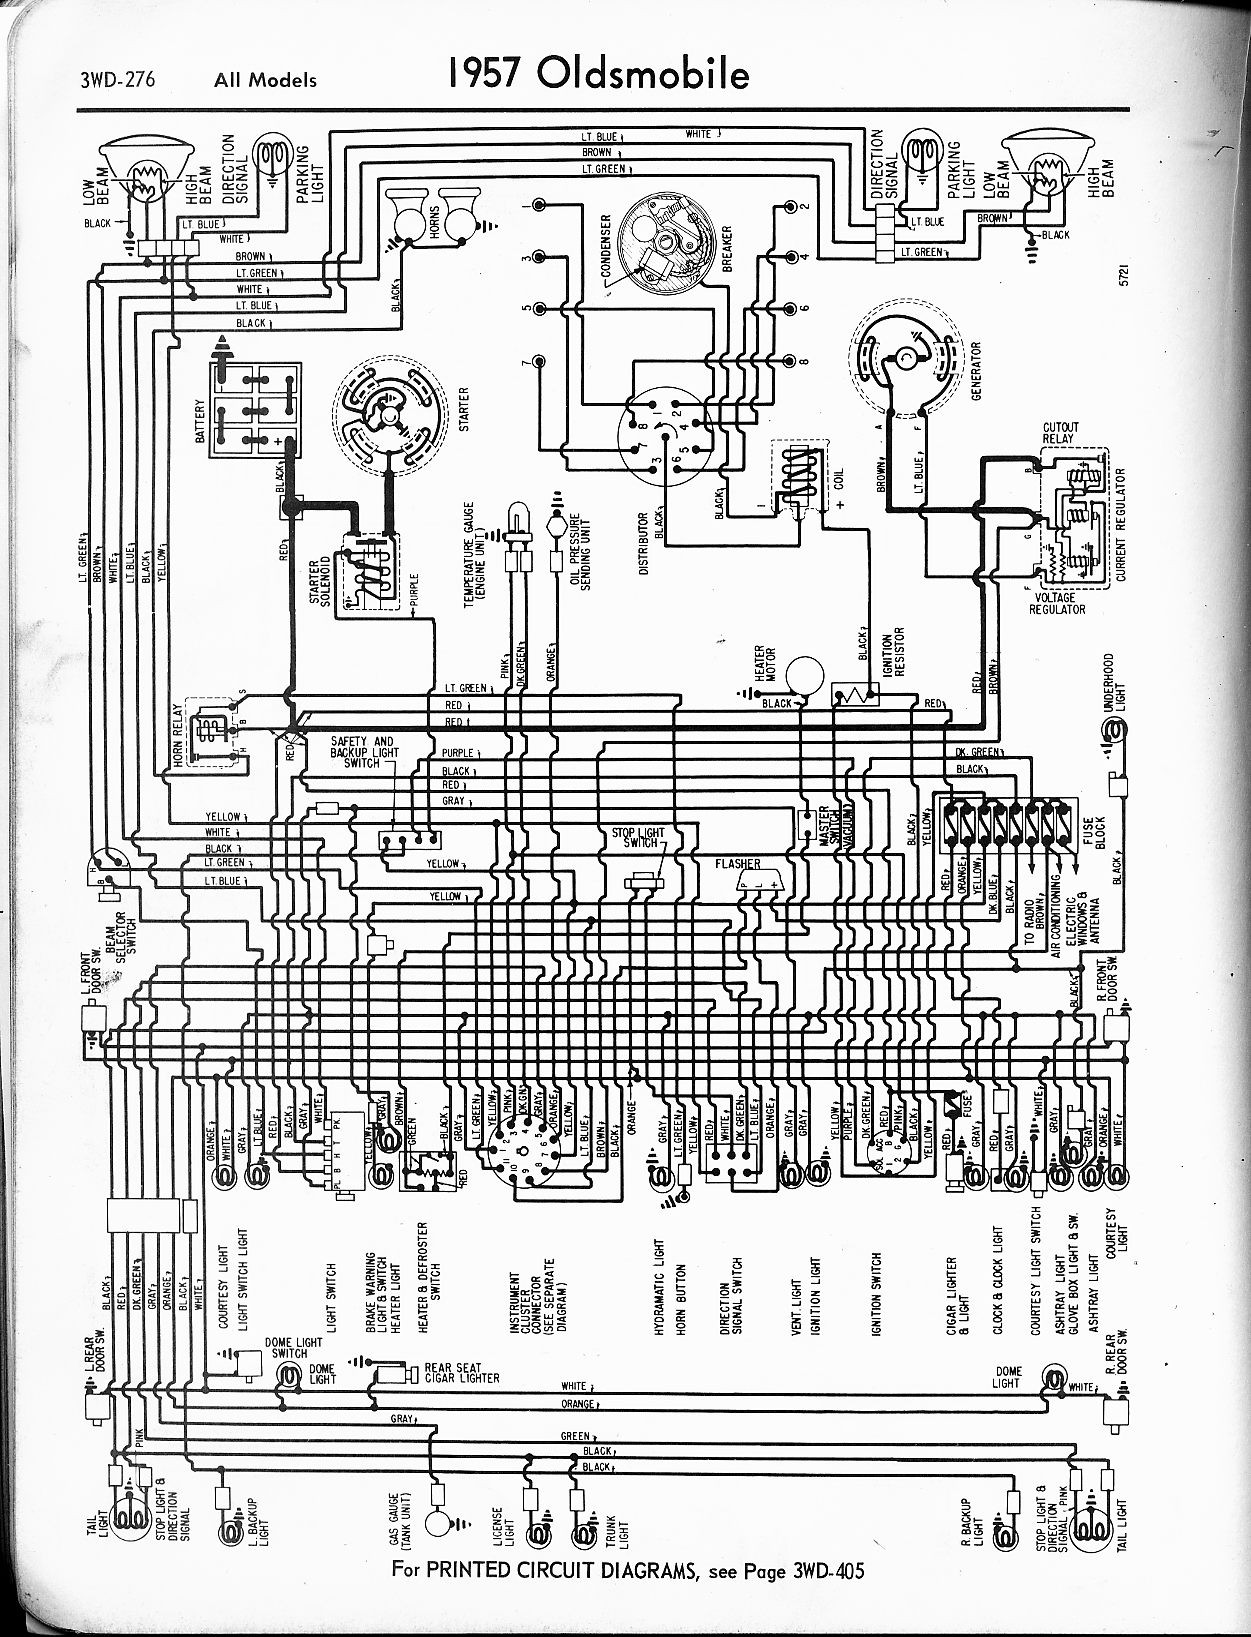 1997 Pontiac Grand Am Engine Diagram Wiring Diagram Besides 1996 Oldsmobile Cutlass Engine Wiring Diagram Of 1997 Pontiac Grand Am Engine Diagram